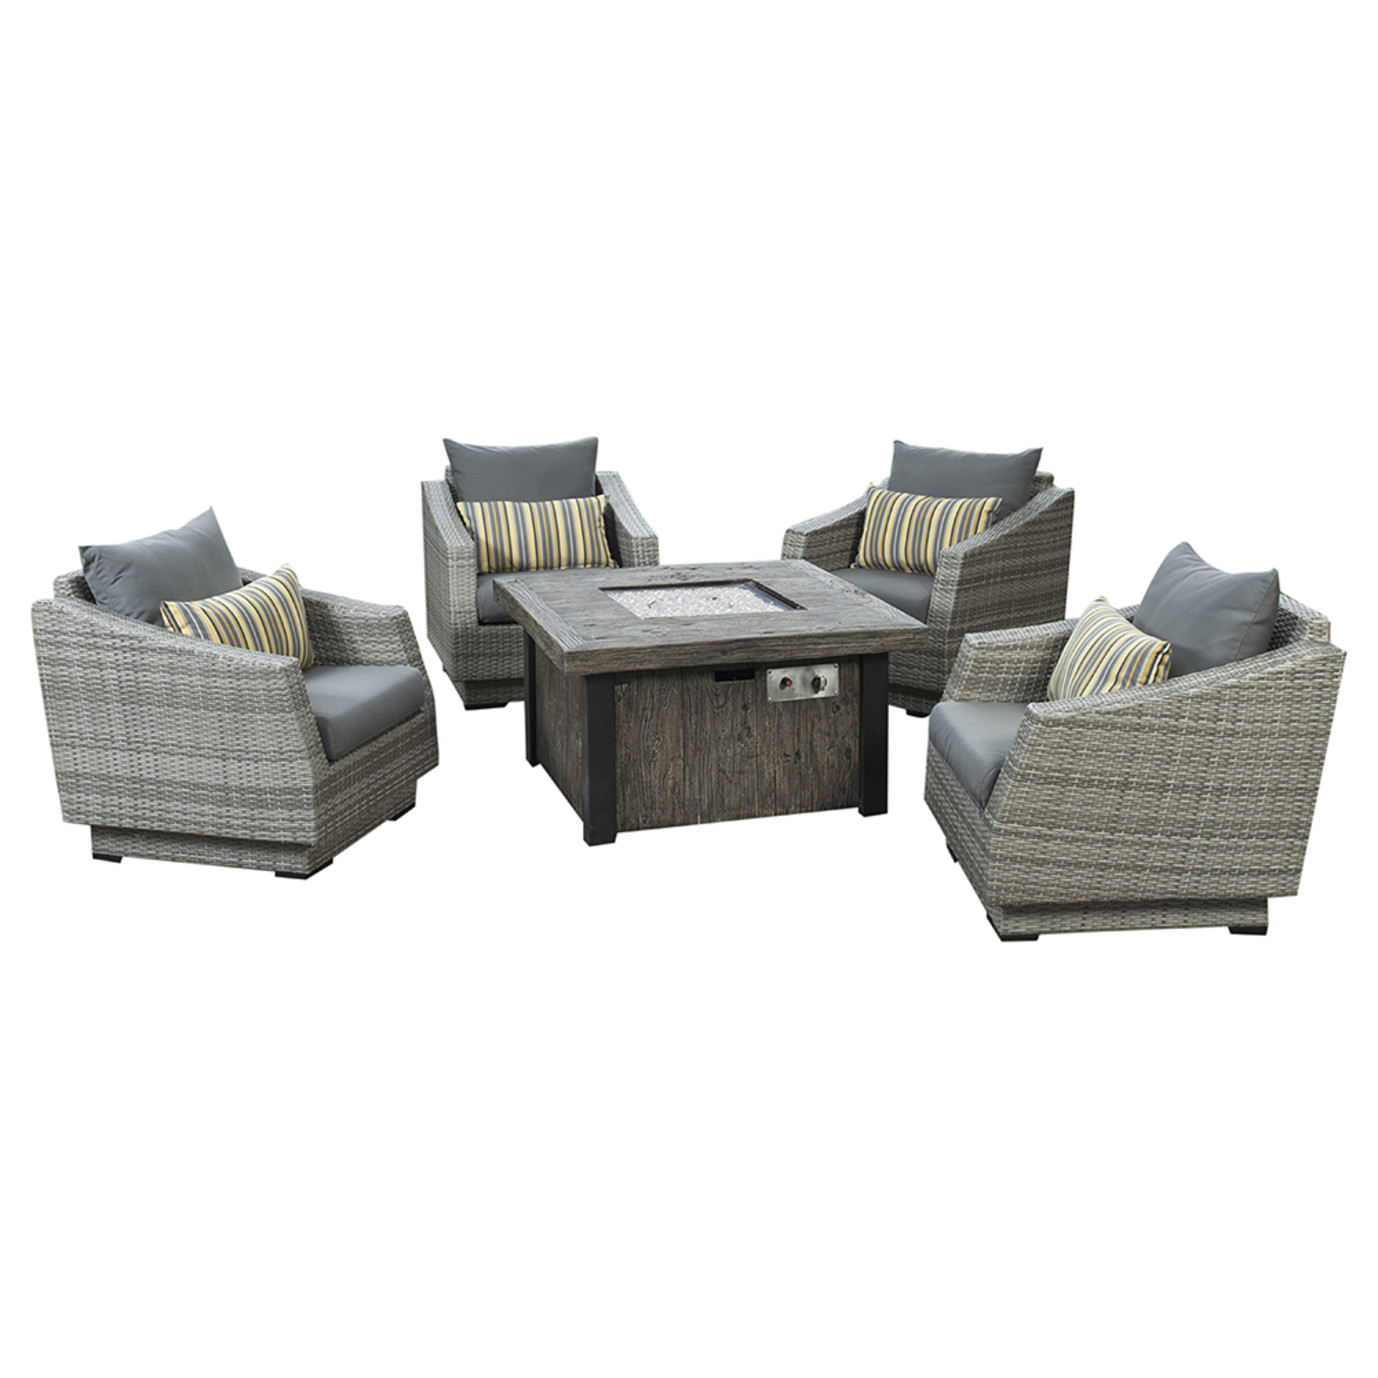 Cannes™ 5 Piece Fire Chat Set - Charcoal Gray